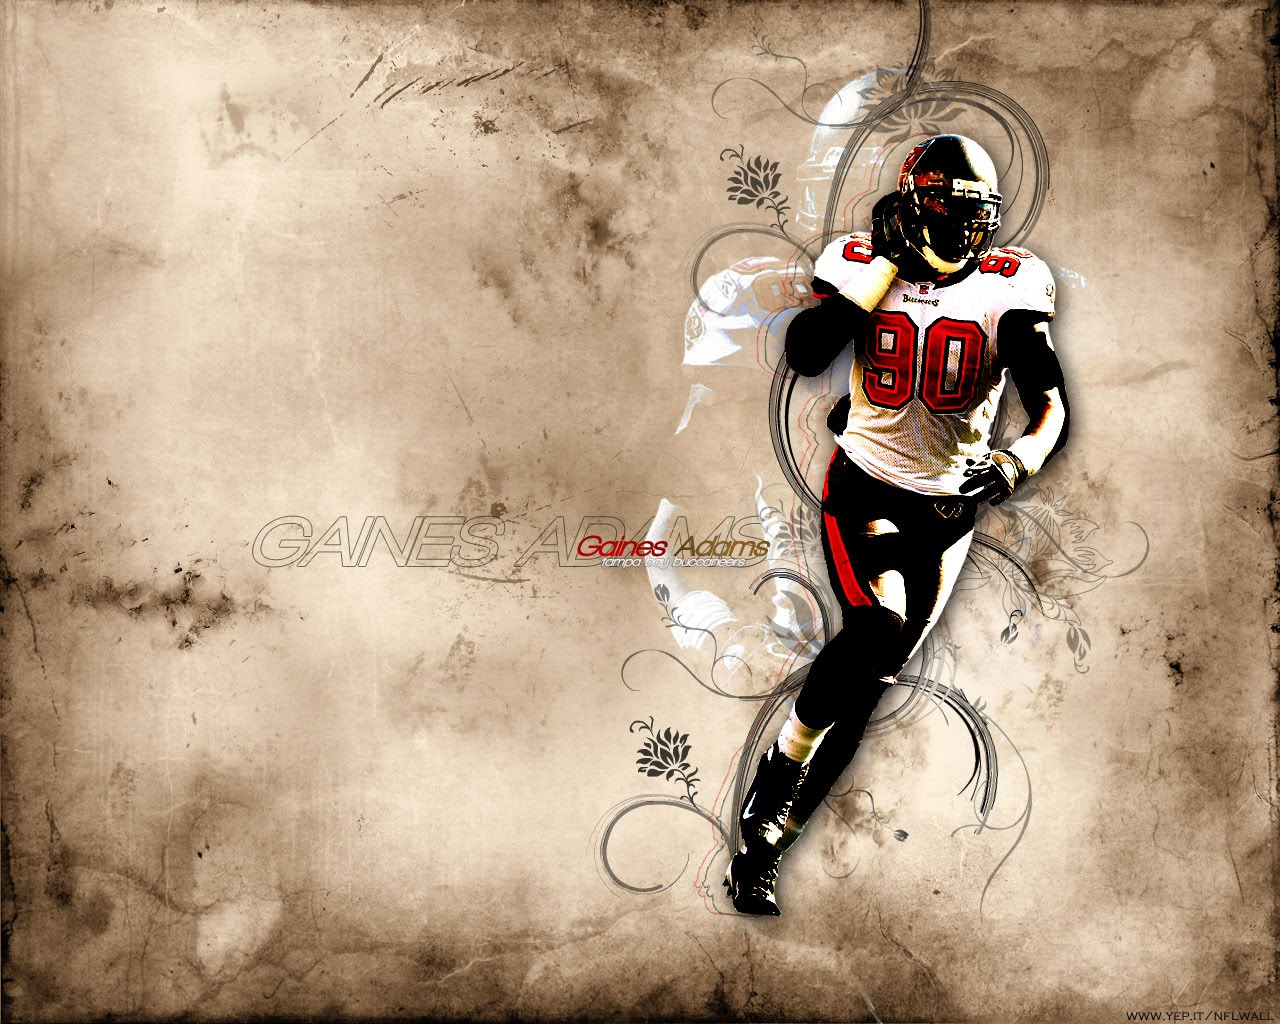 http://4.bp.blogspot.com/_SPY5-z18DBU/TT3ft9fprJI/AAAAAAAAAso/ixVPb7nqaLY/s1600/gaines_adams_wallpaper_tampa_bay_buccaneers_1280x1024.jpeg